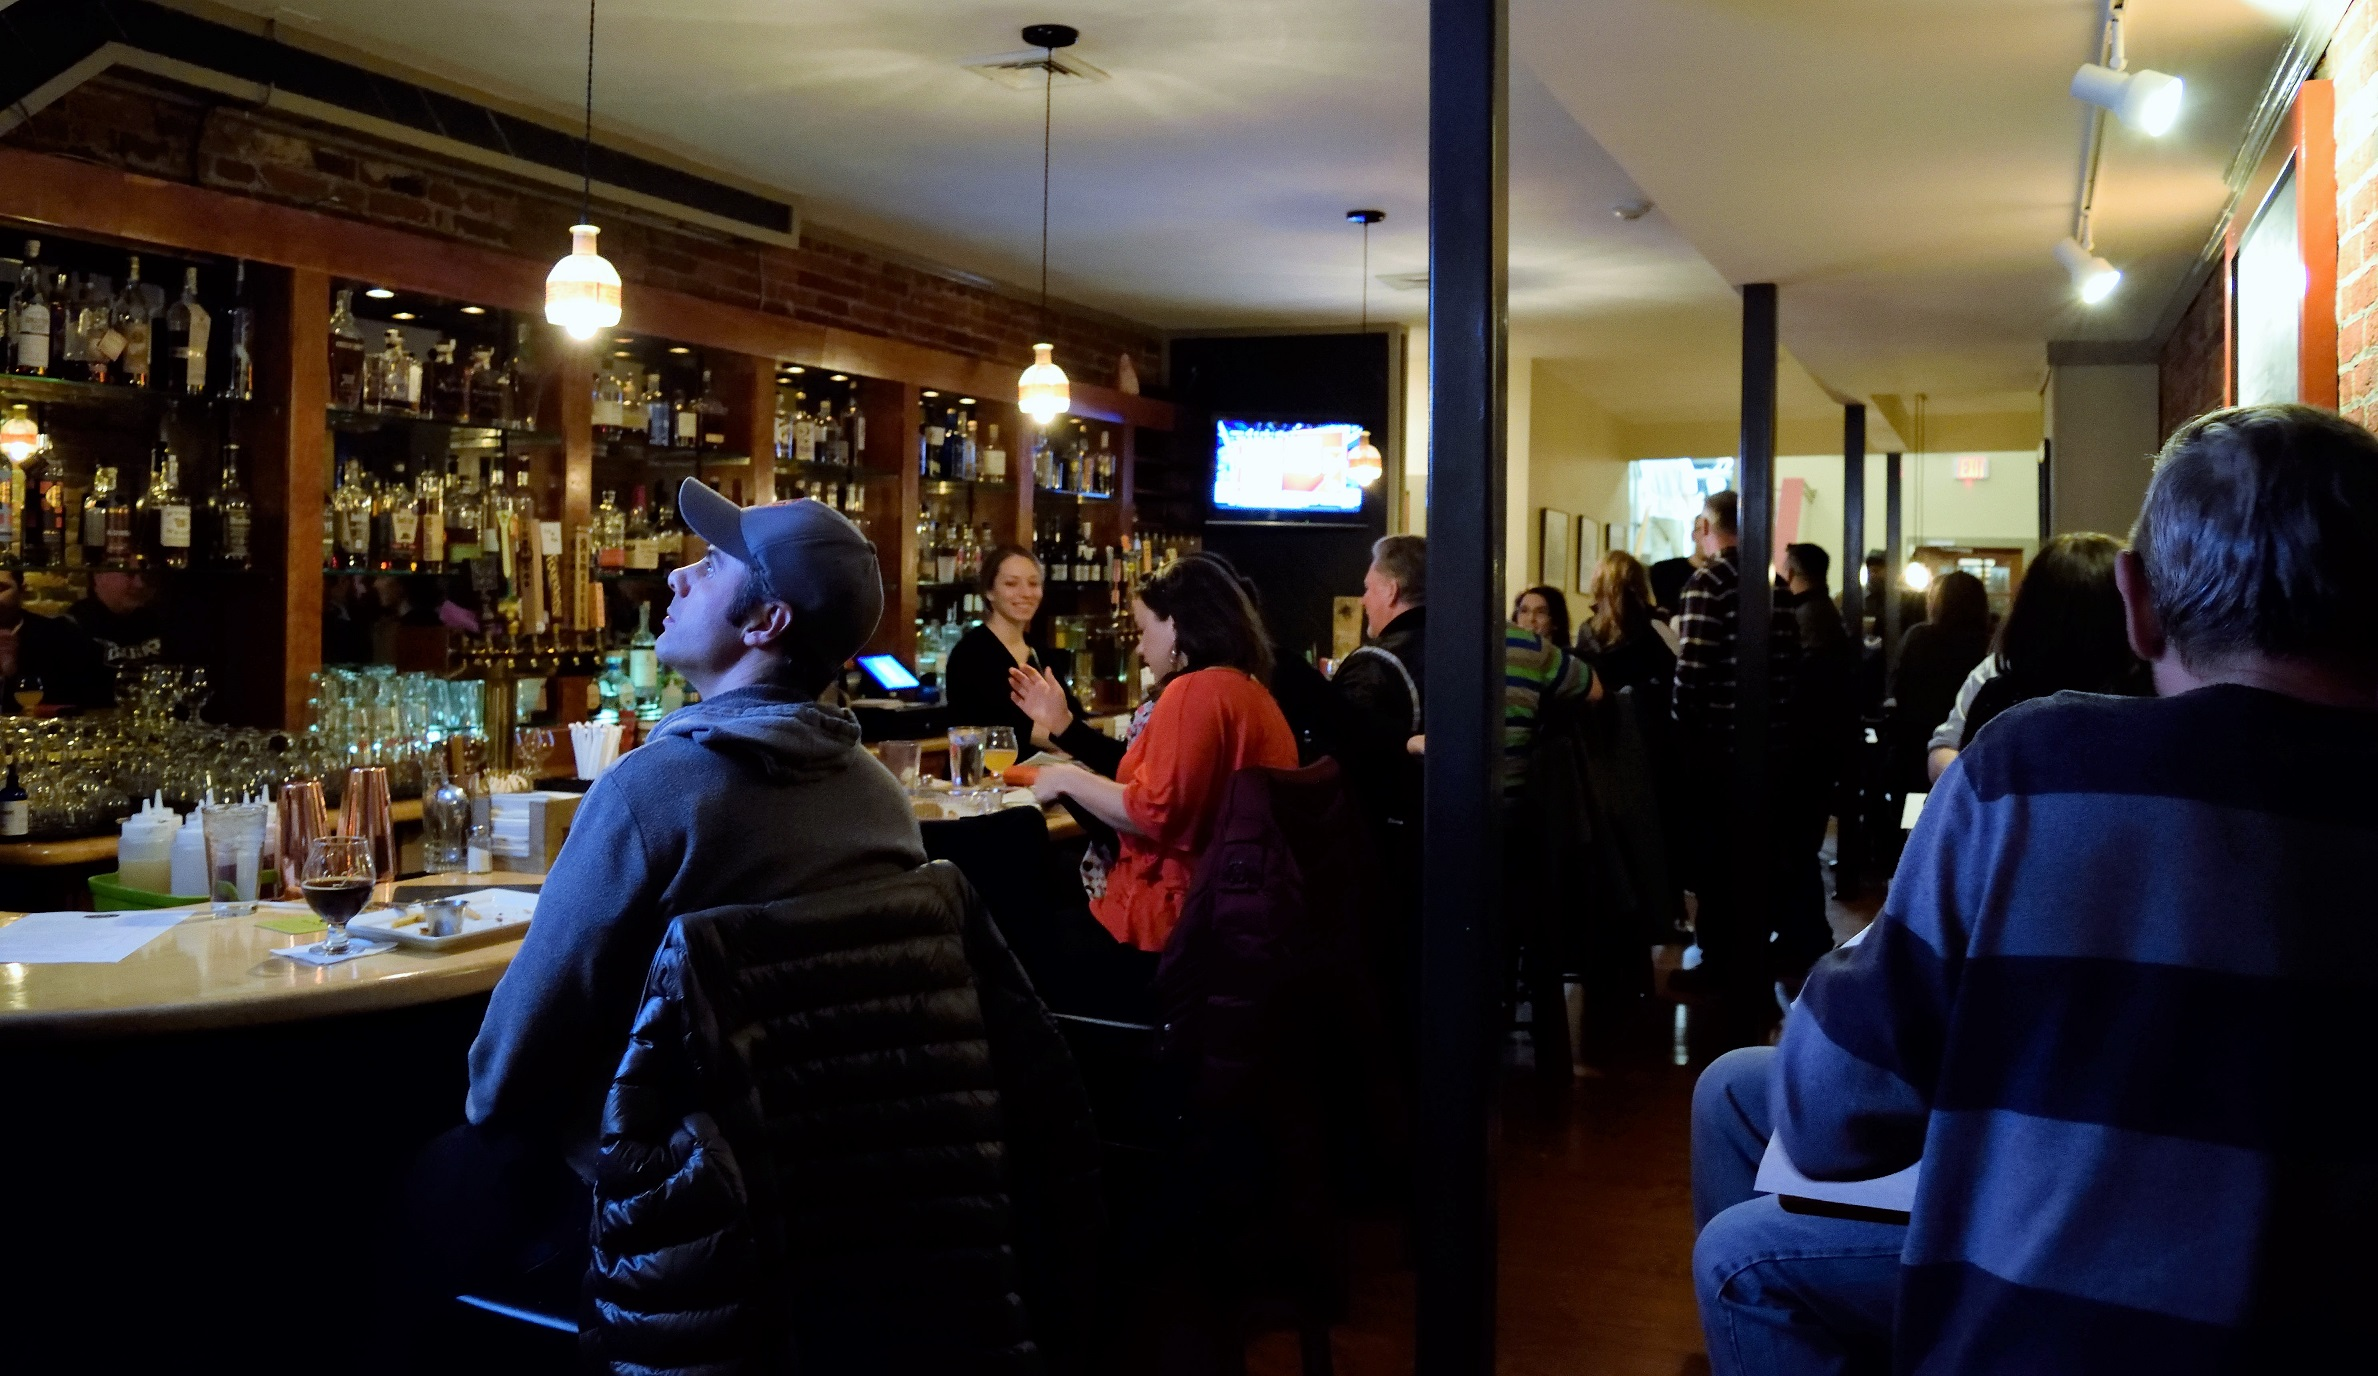 Nice bar area, with tons of promise! Come visit!